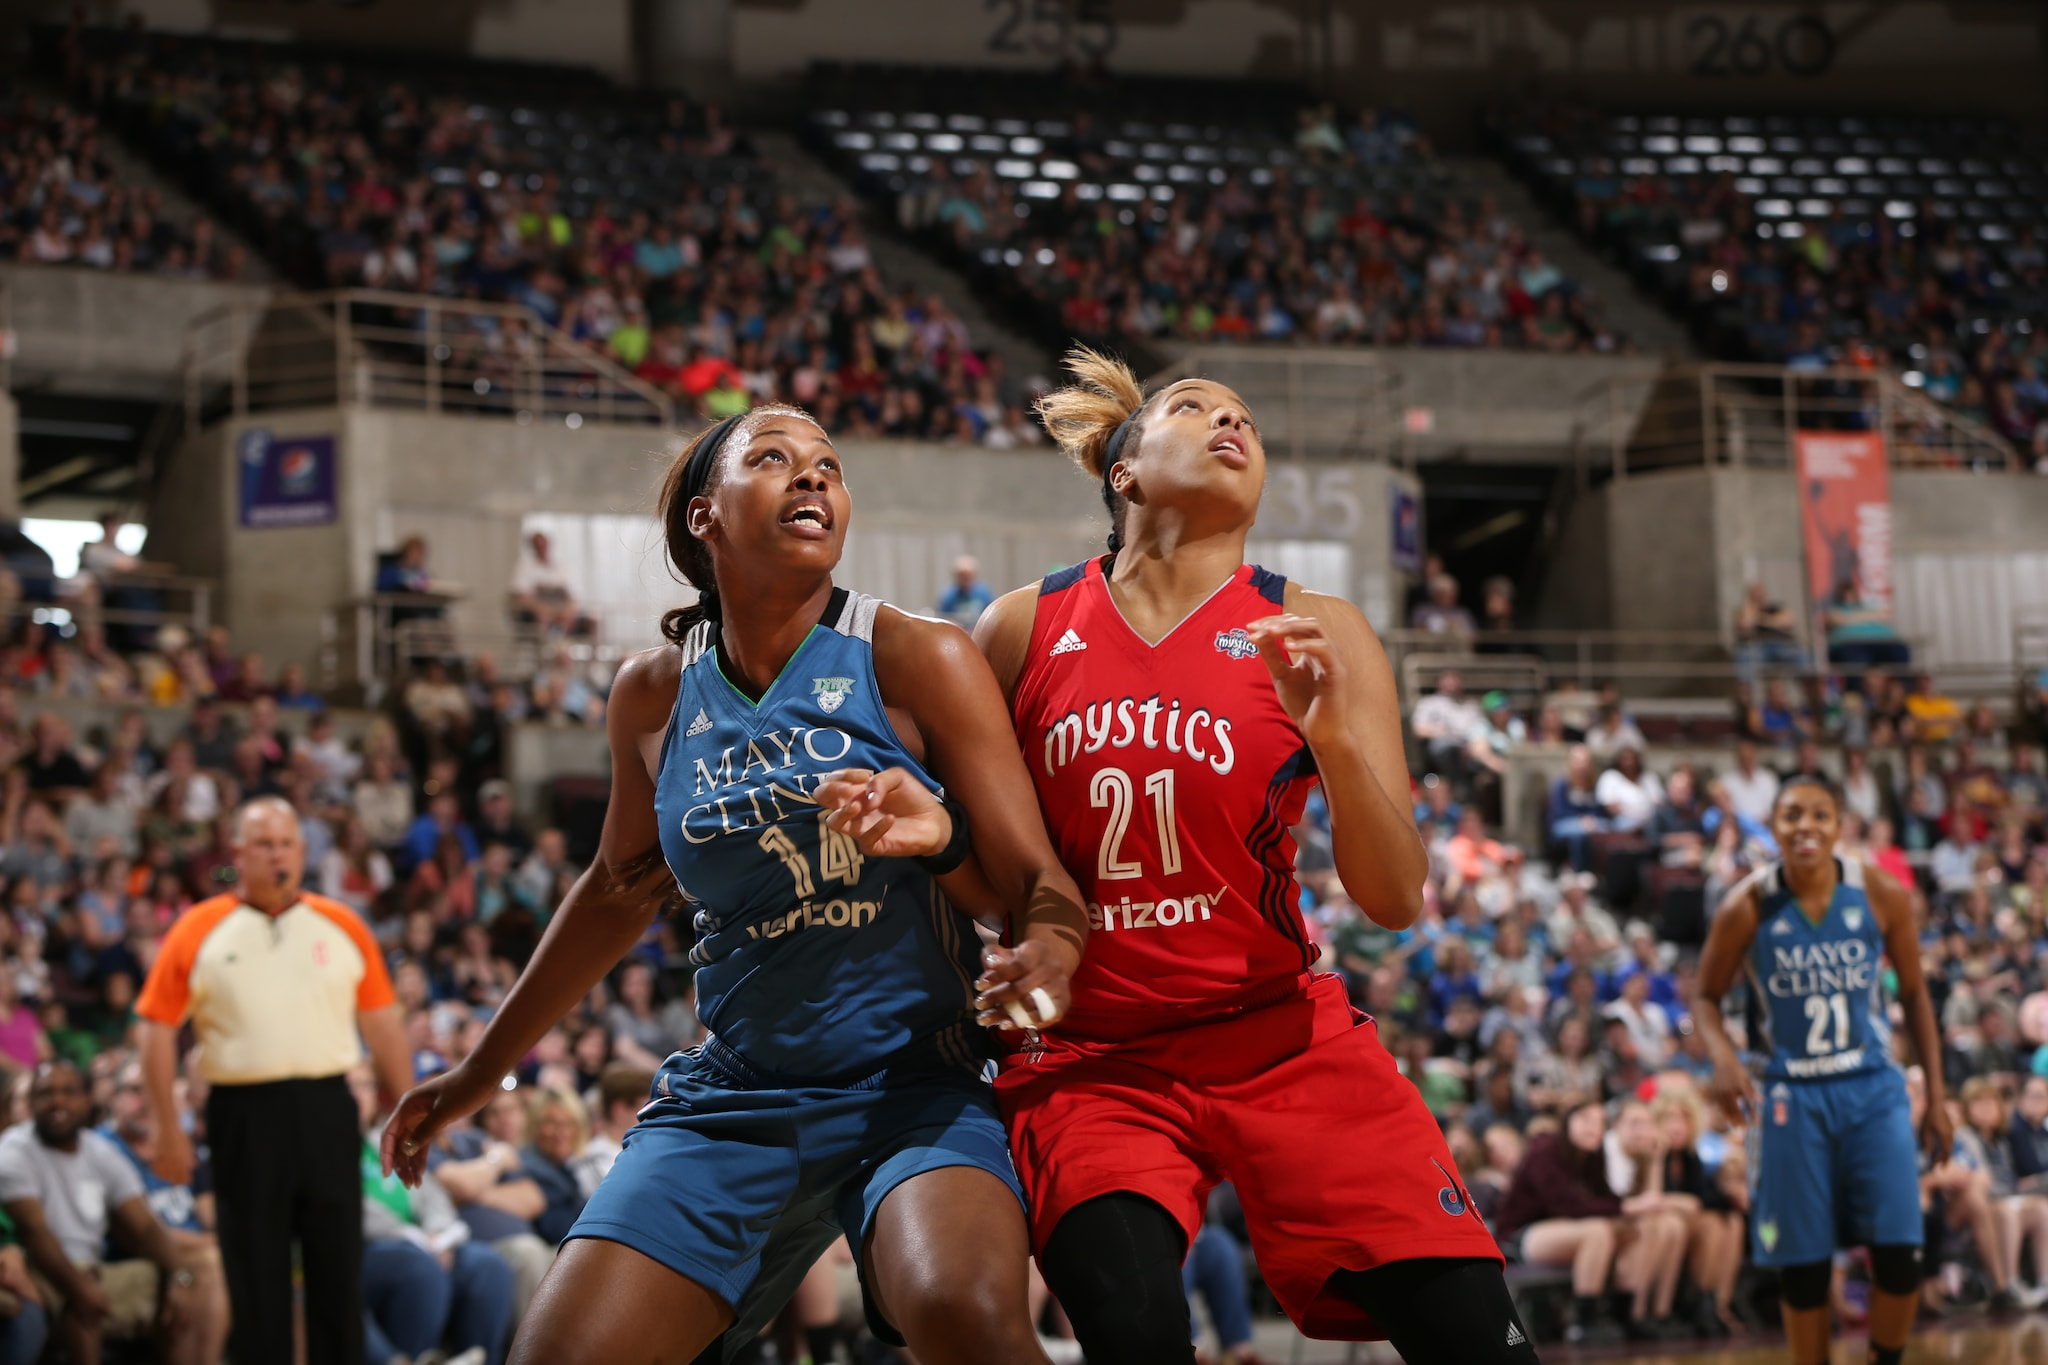 ROCHESTER, MN - MAY 8: Bashaara Graves #14 of the Minnesota Lynx attempts to rebound the basketball against Tianna Hawkins #21 of the Washington Mystics during the preseason game on May 8, 2016 at the Mayo Civic Center in Rochester, Minnesota. NOTE TO USER: User expressly acknowledges and agrees that, by downloading and or using this Photograph, user is consenting to the terms and conditions of the Getty Images License Agreement. Mandatory Copyright Notice: Copyright 2016 NBAE (Photo by David Sherman/NBAE via Getty Images)